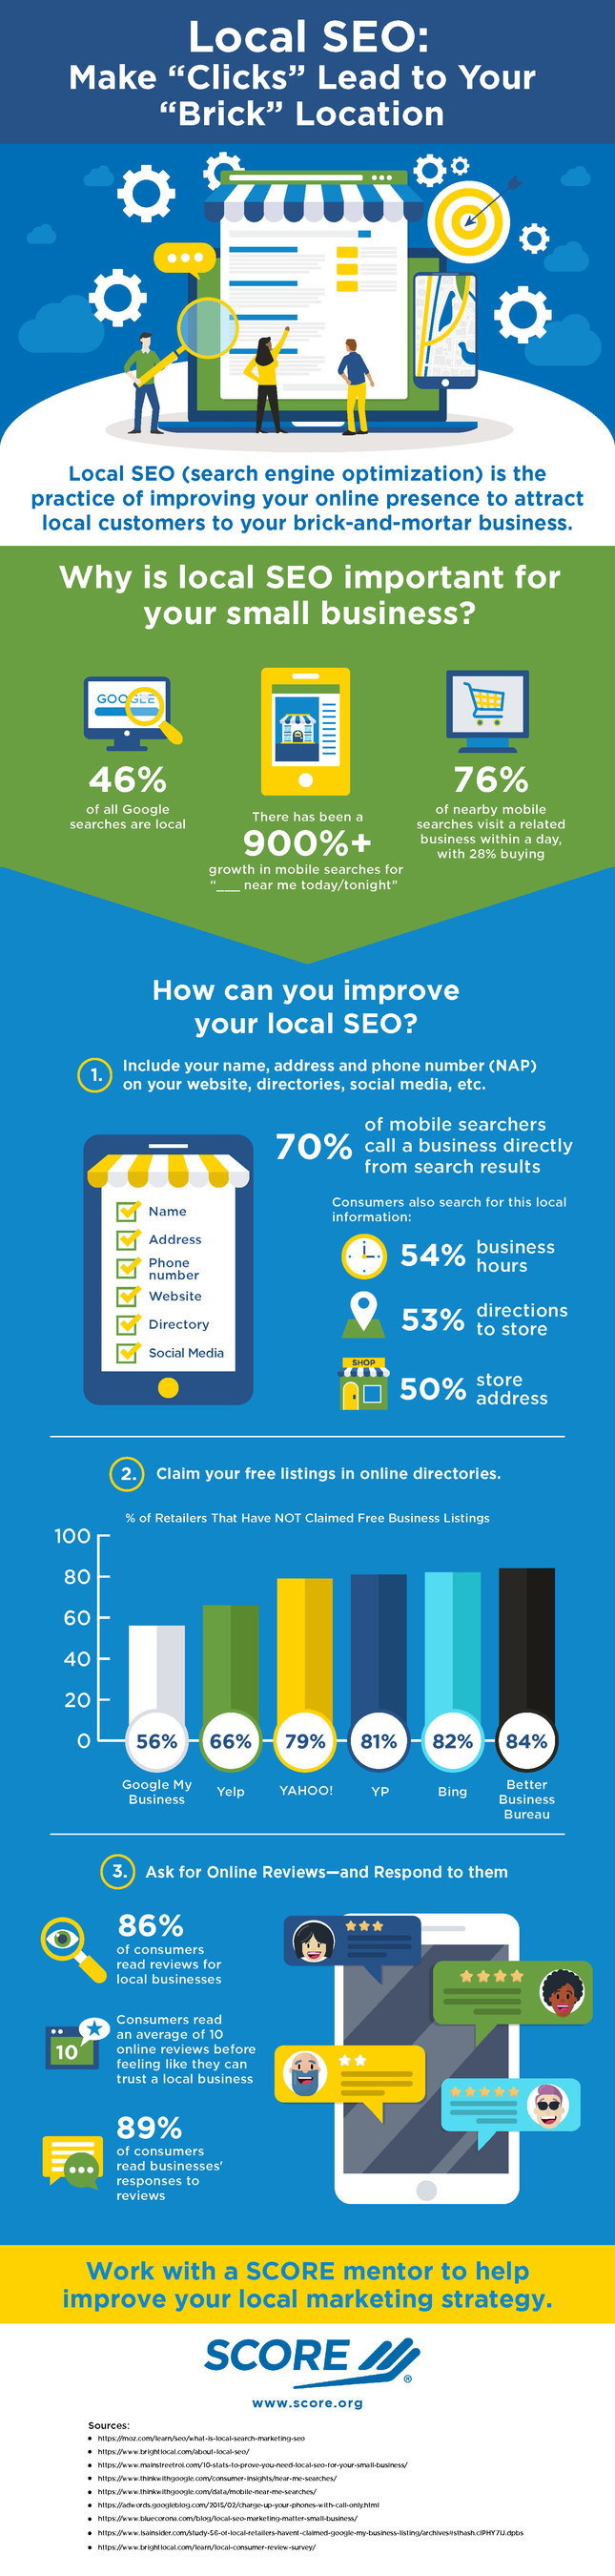 SCORE, mentors to America's small businesses, has published an infographic highlighting how small businesses can use search engine optimization (SEO) to capitalize on the rise in local search to increase their customer traffic. Data gathered by SCORE shows that 46% of all Google searches are local – and indicates a more than 900% growth in mobile searches for local businesses from 2016 to 2018.